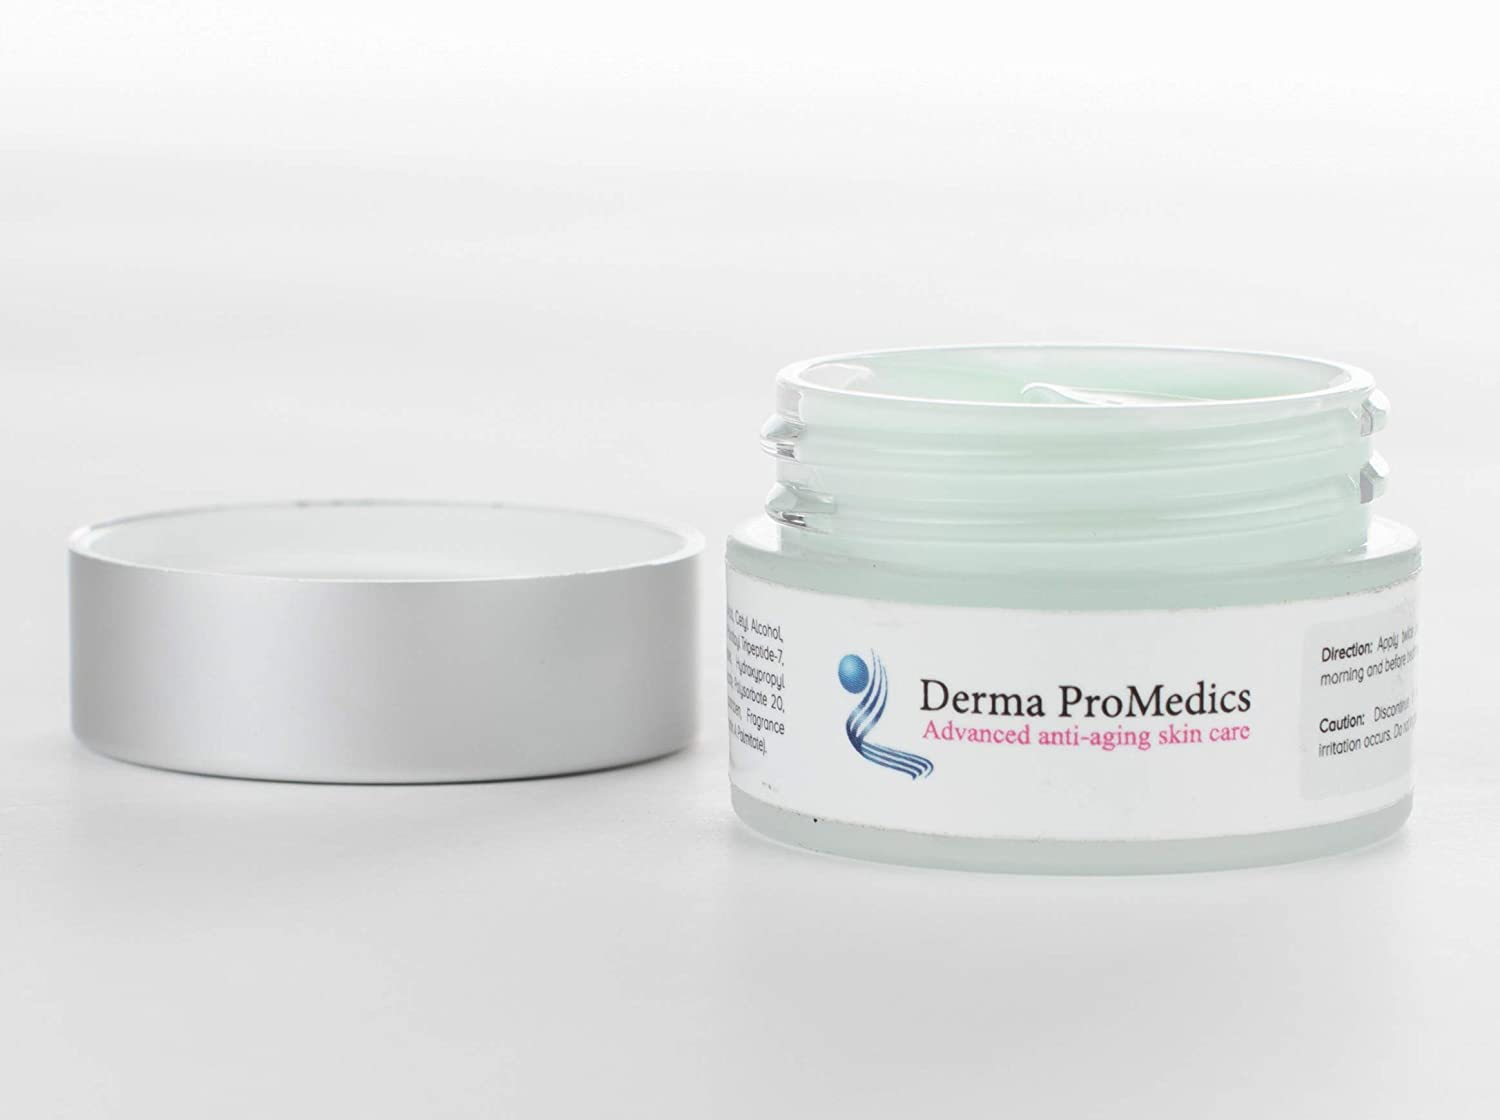 Derma ProMedics Eye Cream - - for Dark Circles, Puffiness, Wrinkles and Bags. - The Most Effective Anti-Aging Eye Cream for Under and Around Eyes